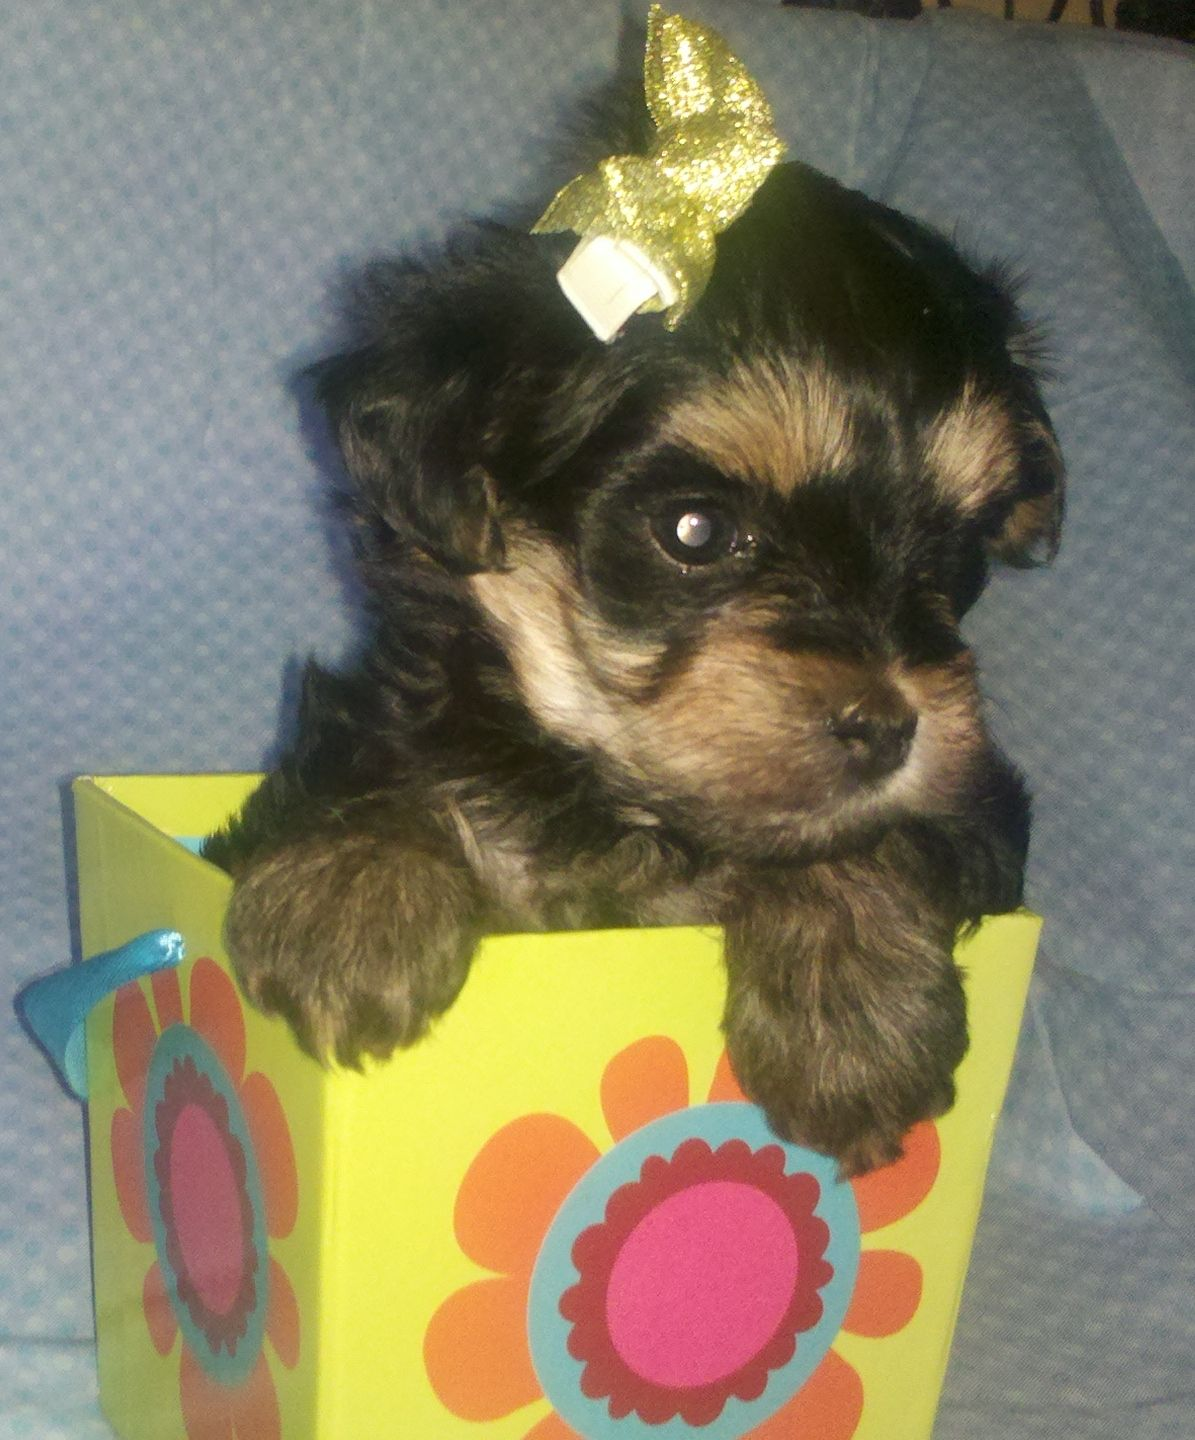 6 Week Old Morkie Puppy With Images Morkie Puppies Poodle